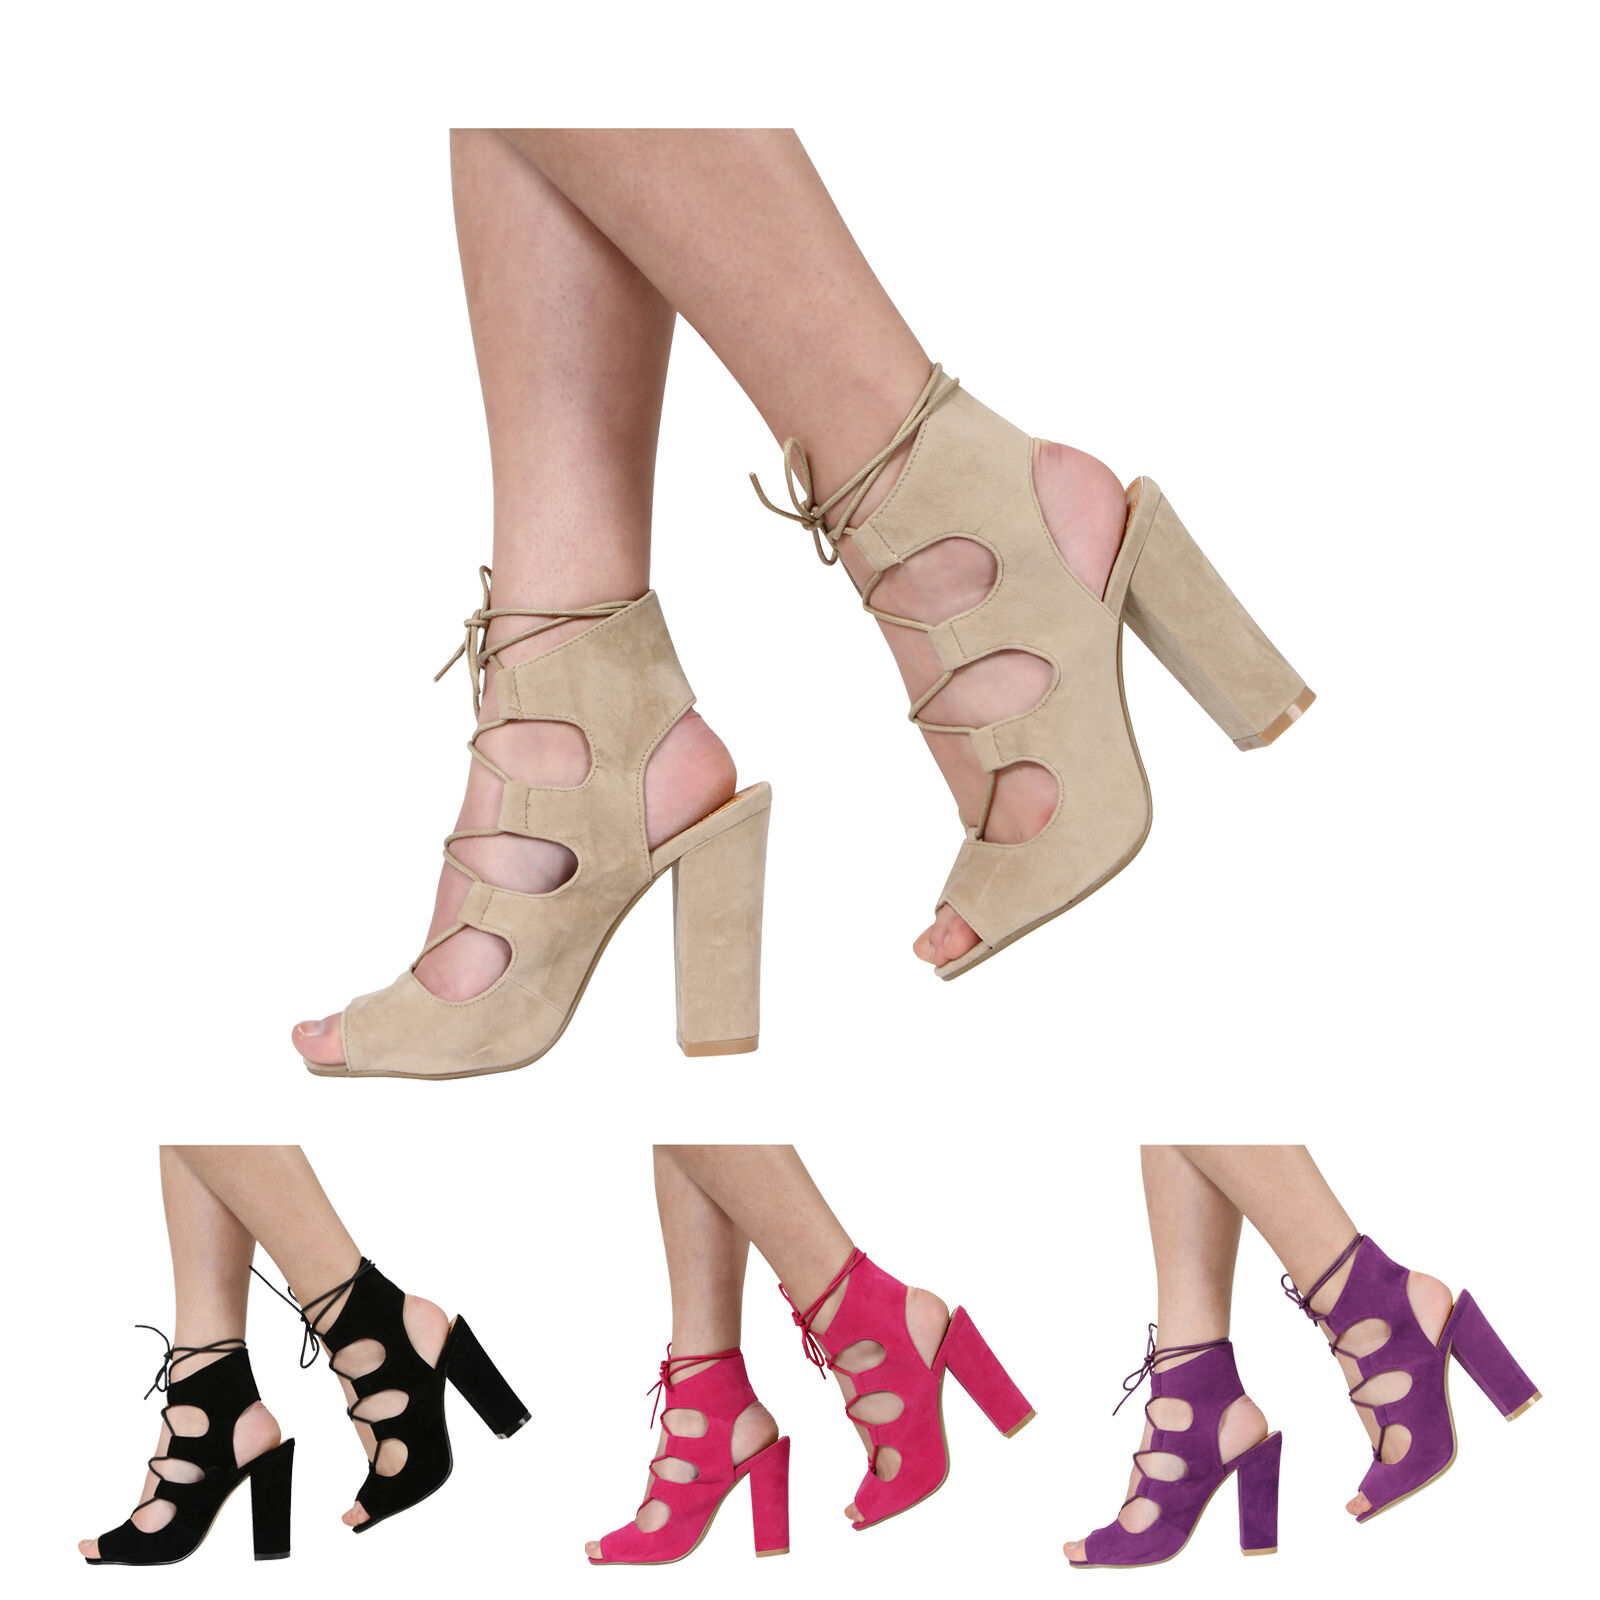 WOMENS LADIES HIGH BLOCK HEEL PEEPTOE CUTOUT ANKLE LACE UP SANDAL SHOES SIZE 3-8